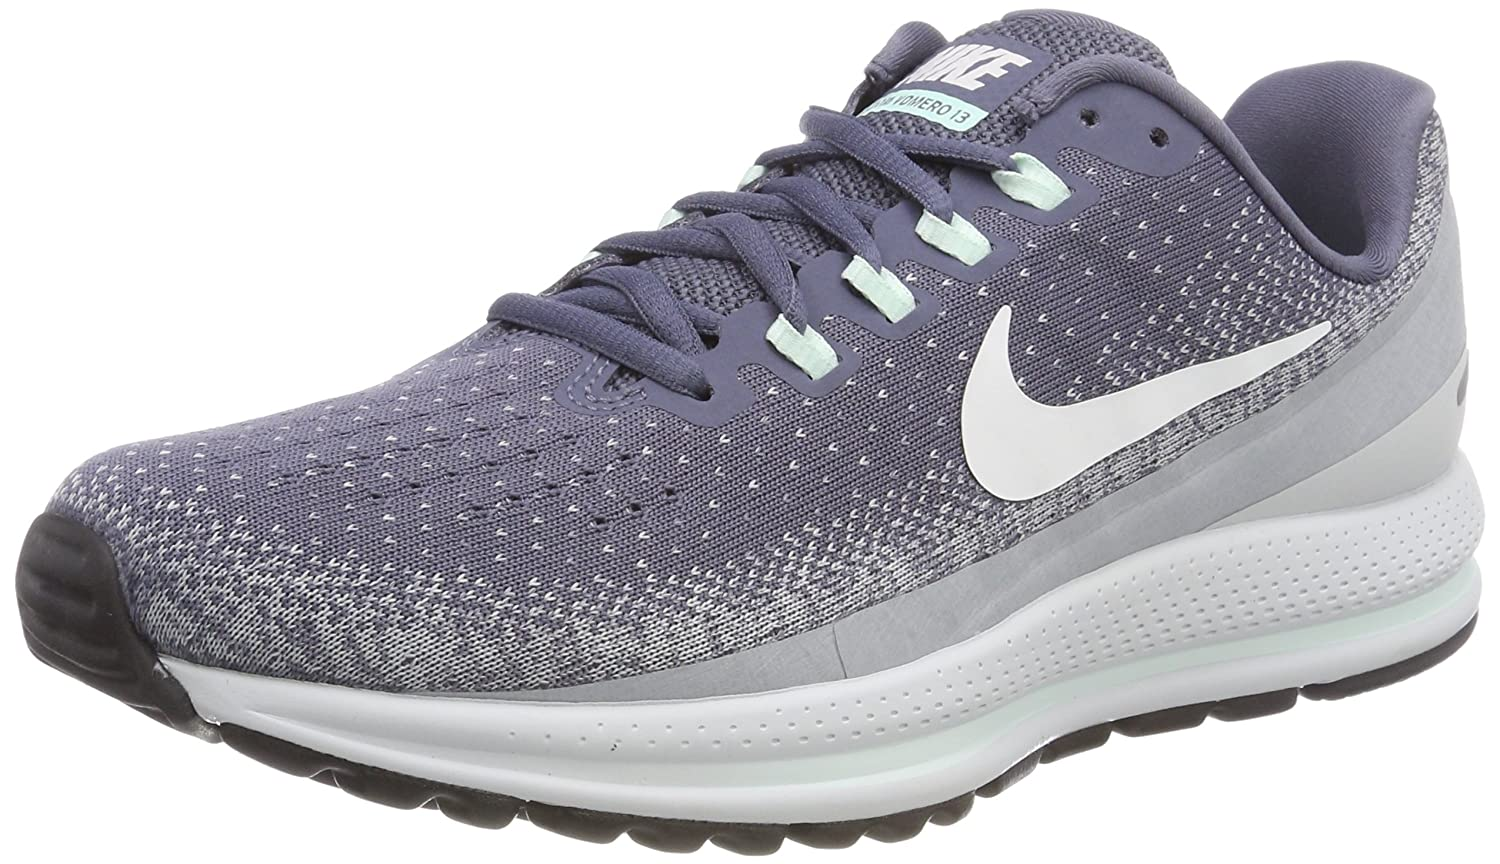 Grau (Light Carbonsummit Weißwolf 002) Nike Damen WMNS WMNS WMNS Air Zoom Vomero 13 Laufschuhe  Fitness-Händler